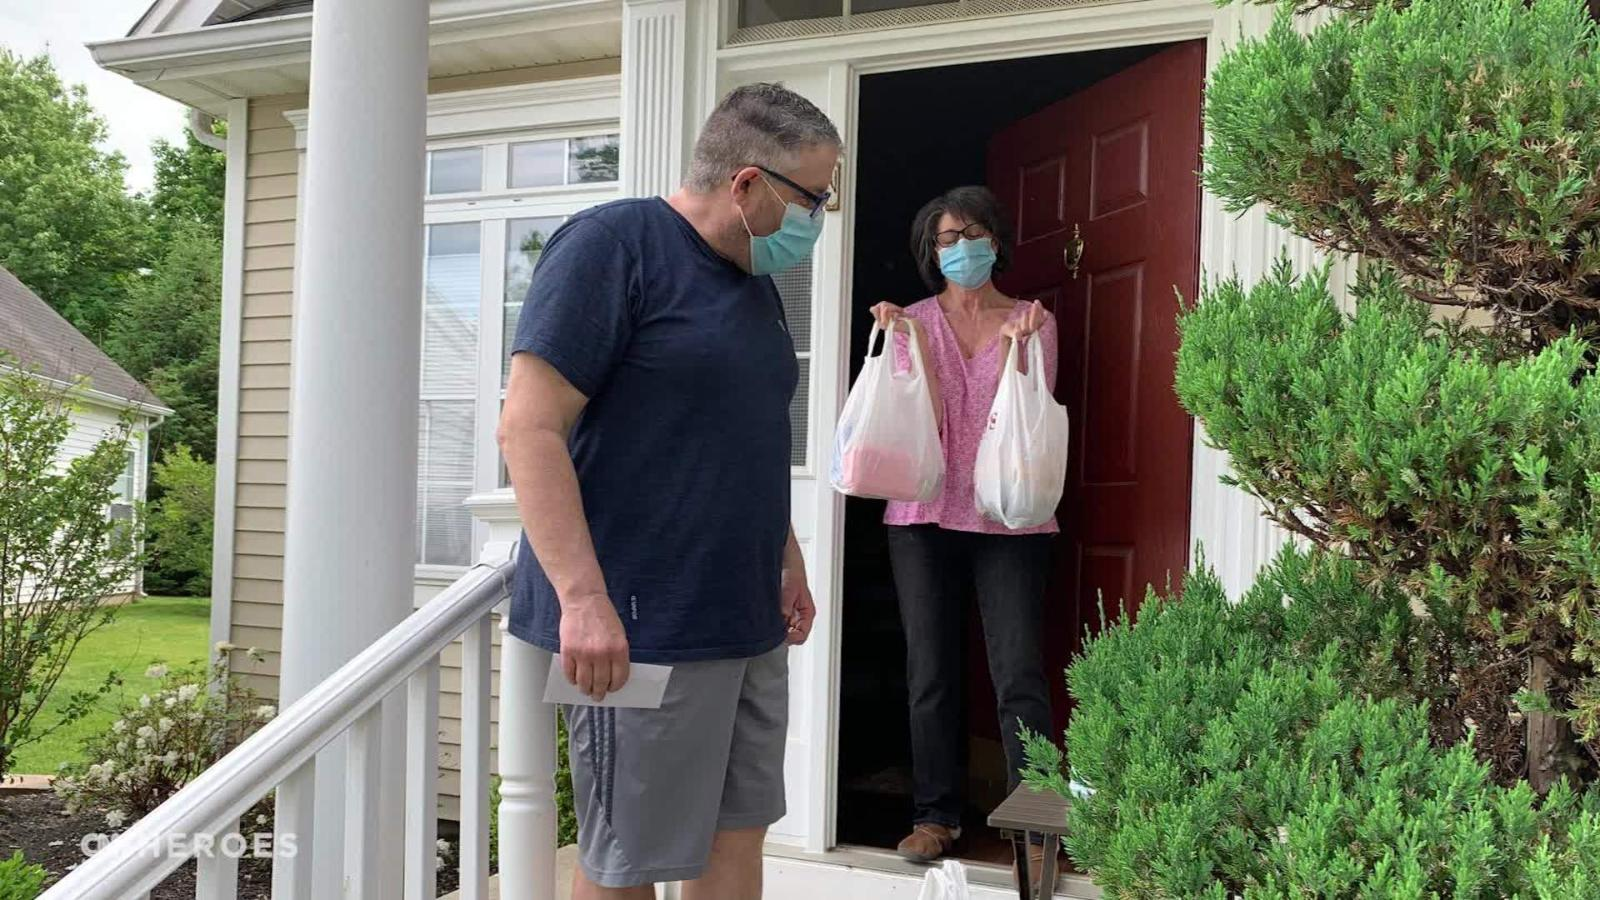 Good Samaritan Greg Dailey is making deliveries to seniors in need.